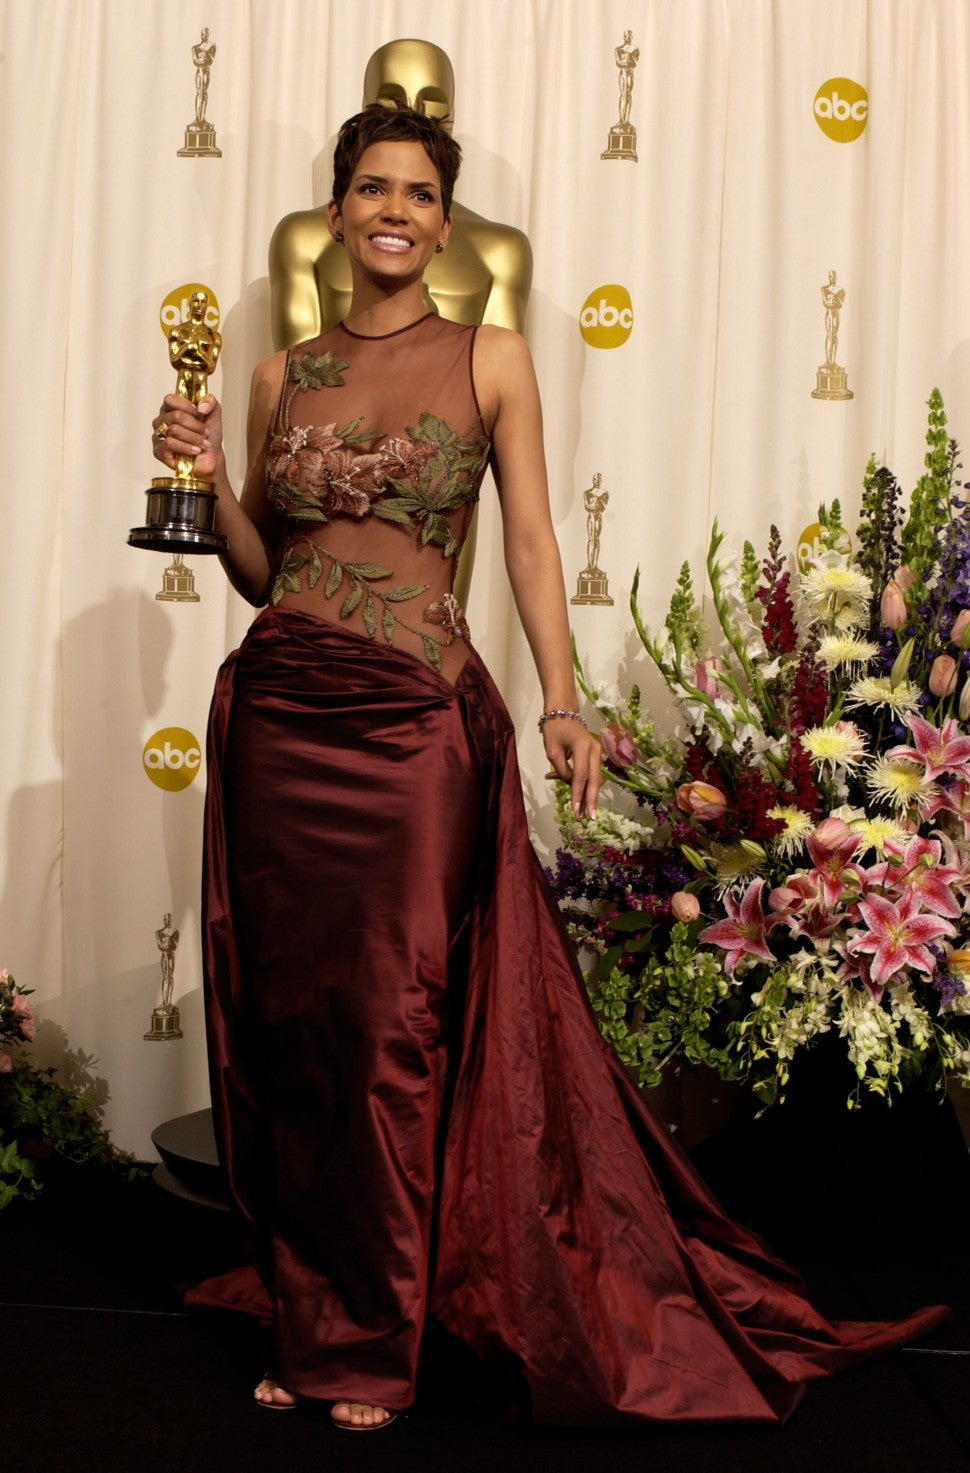 Halle Berry Oscars 2002 dress